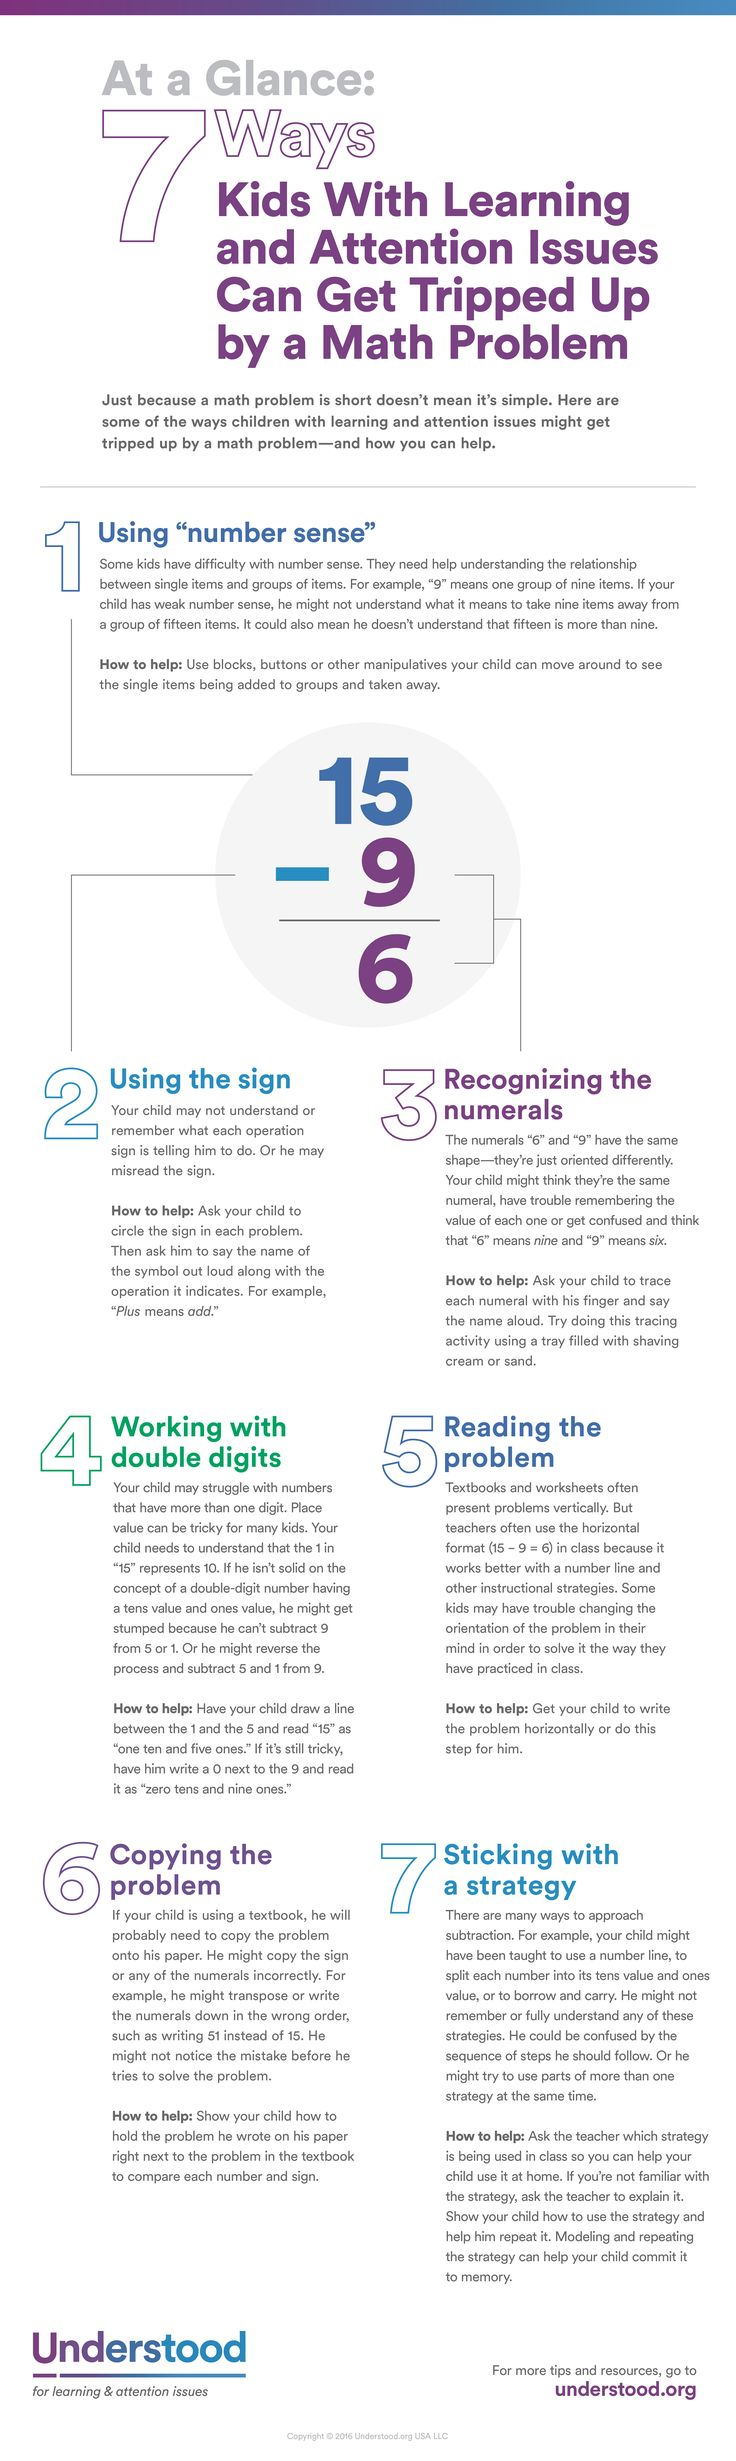 Use this guide to learn how different aspects of a math problem might be challenging to your child with learning and attention issues.